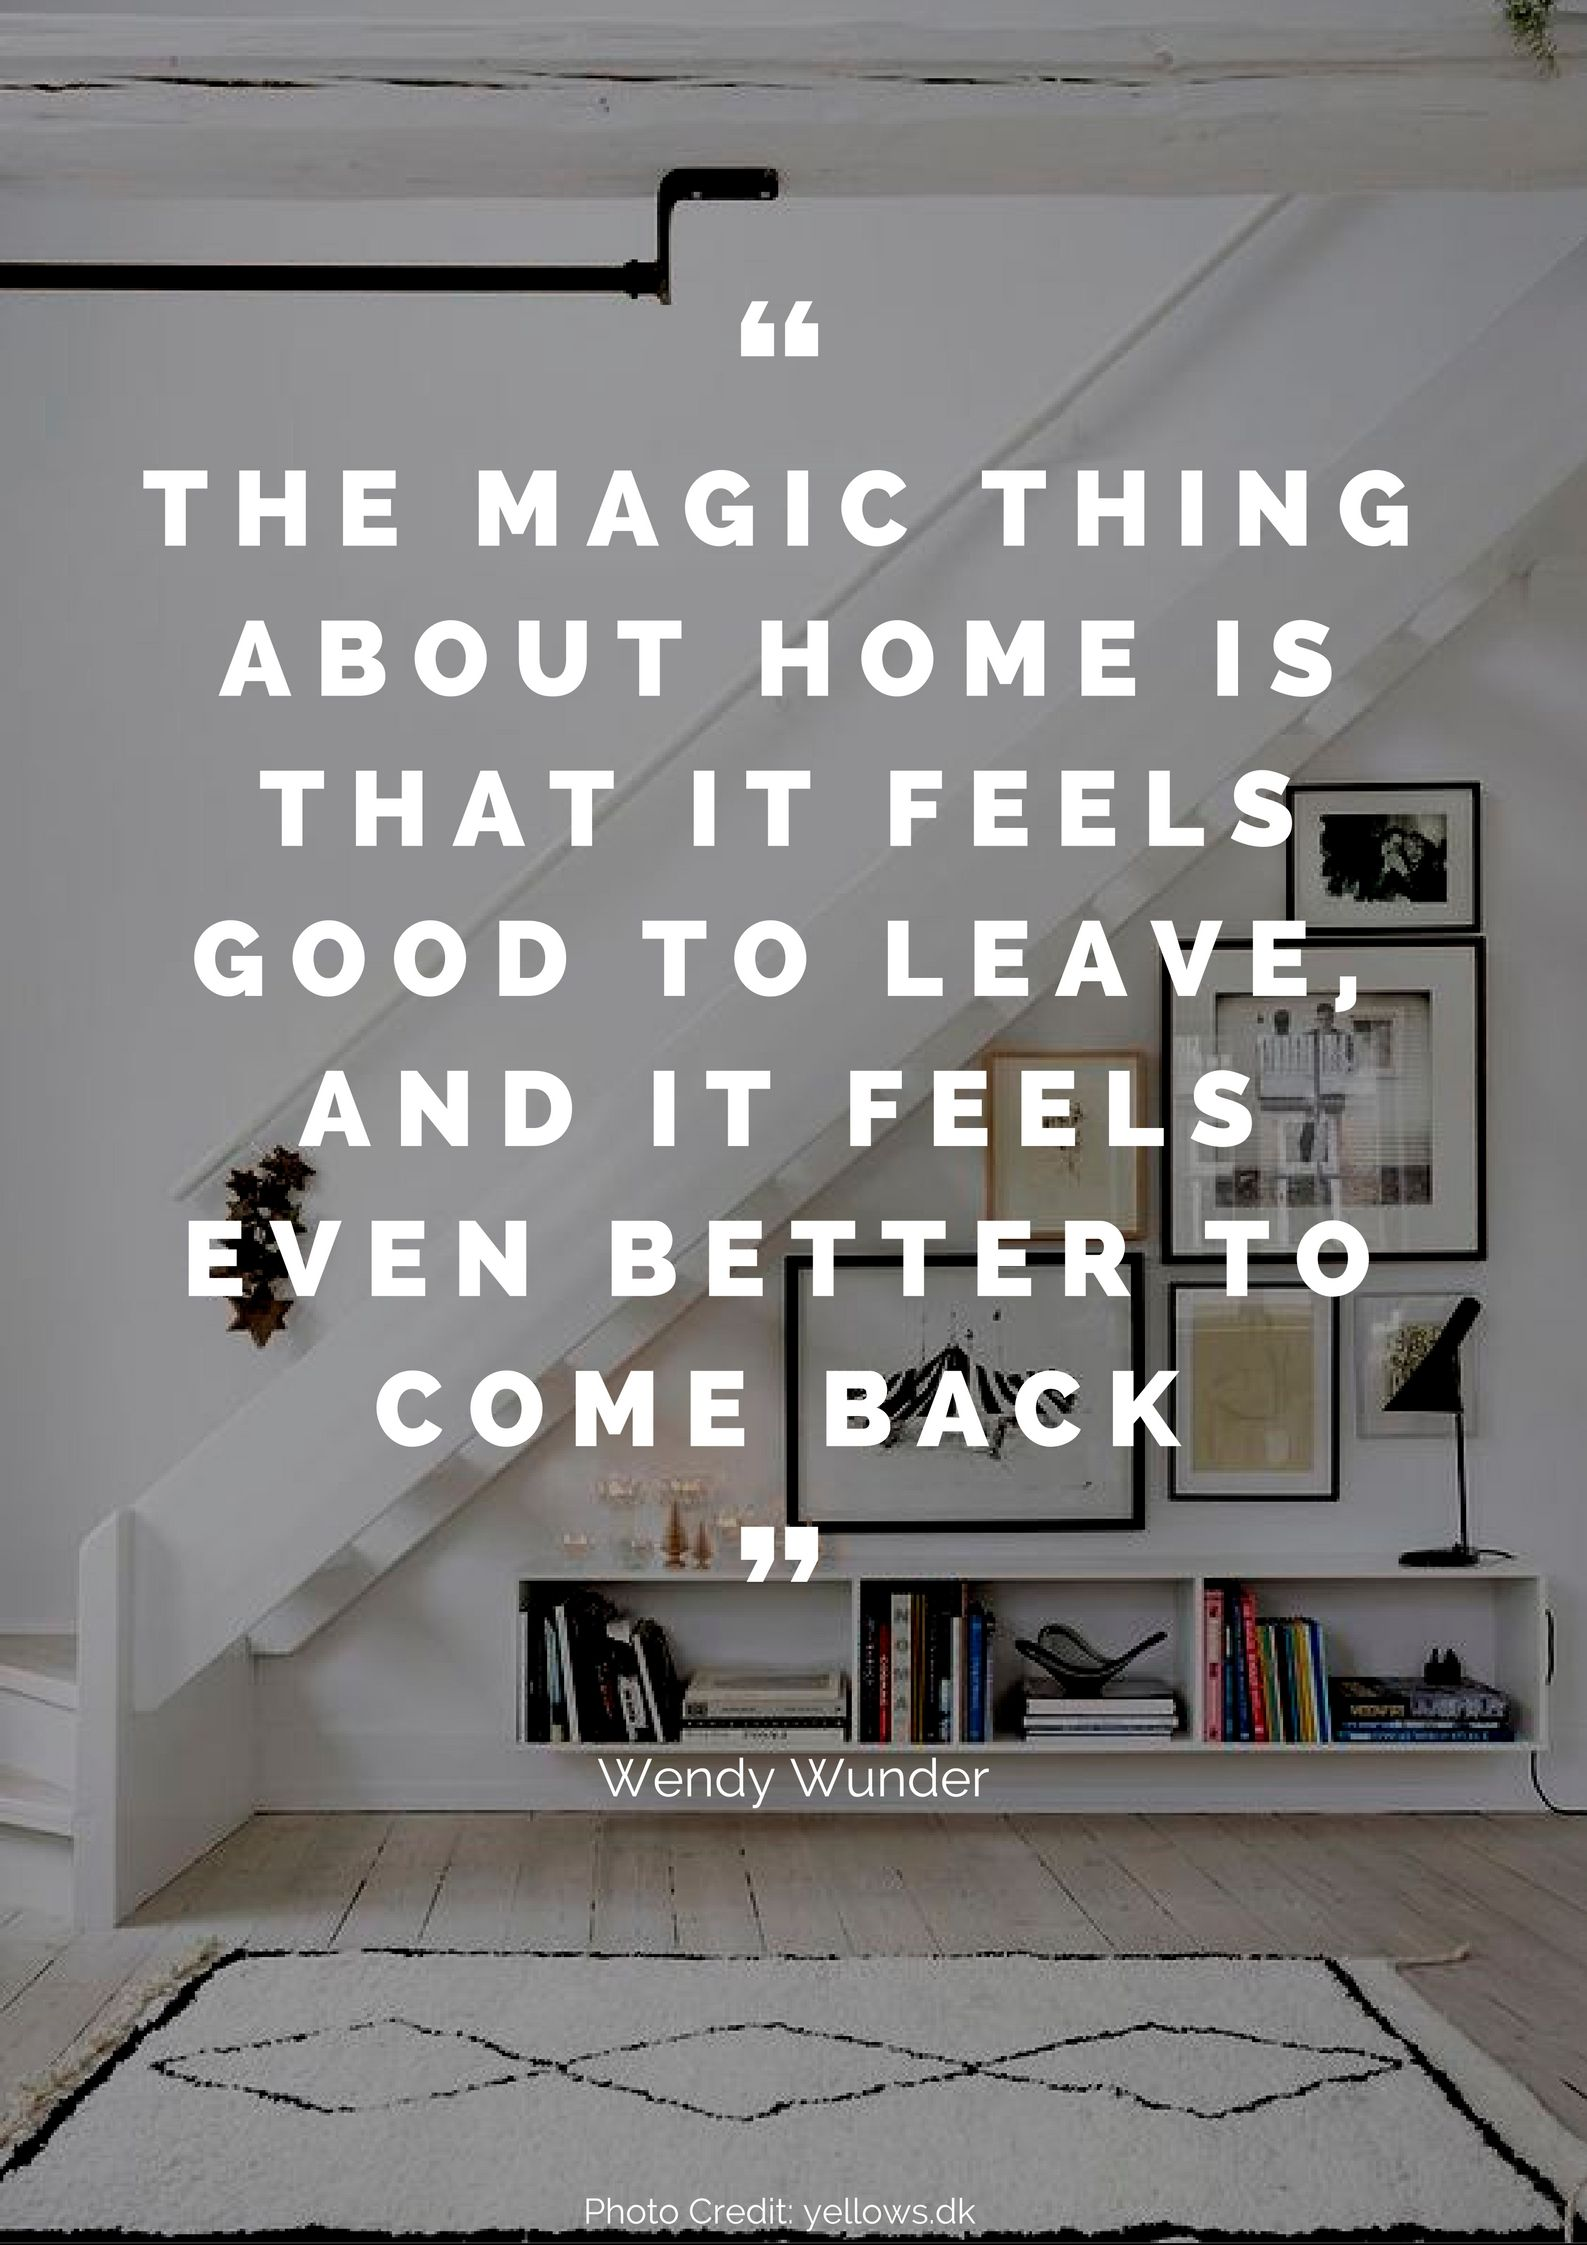 36 Beautiful Quotes About Home | Blog, Design quotes and Qoutes